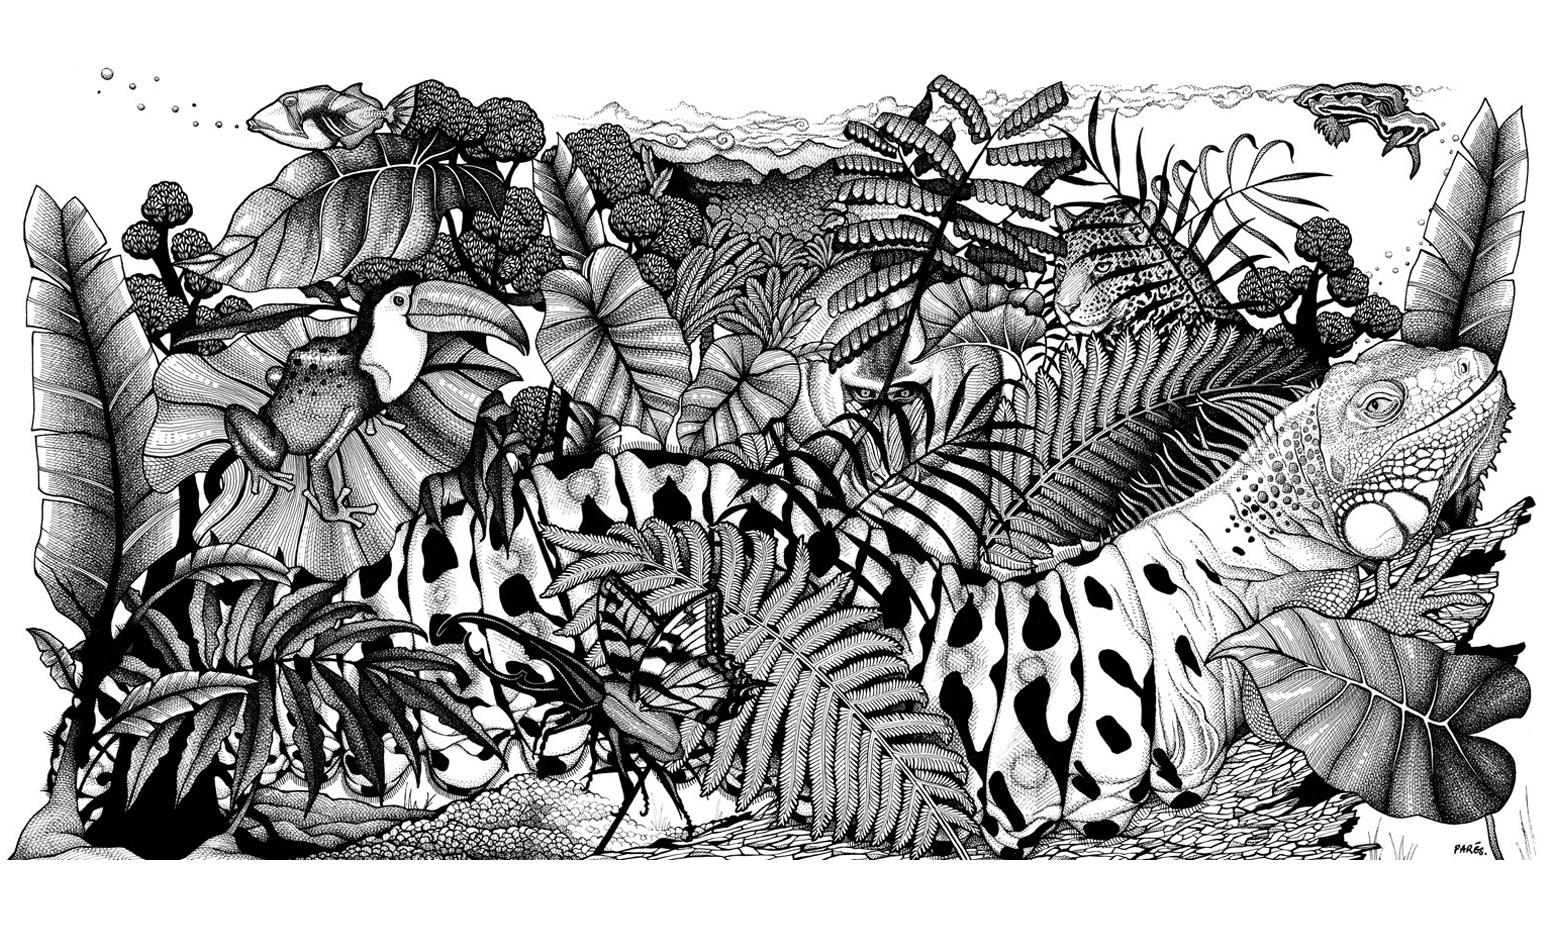 Jungle animaux cam l ons et l zards coloriages difficiles pour adultes - Dessin vegetation ...